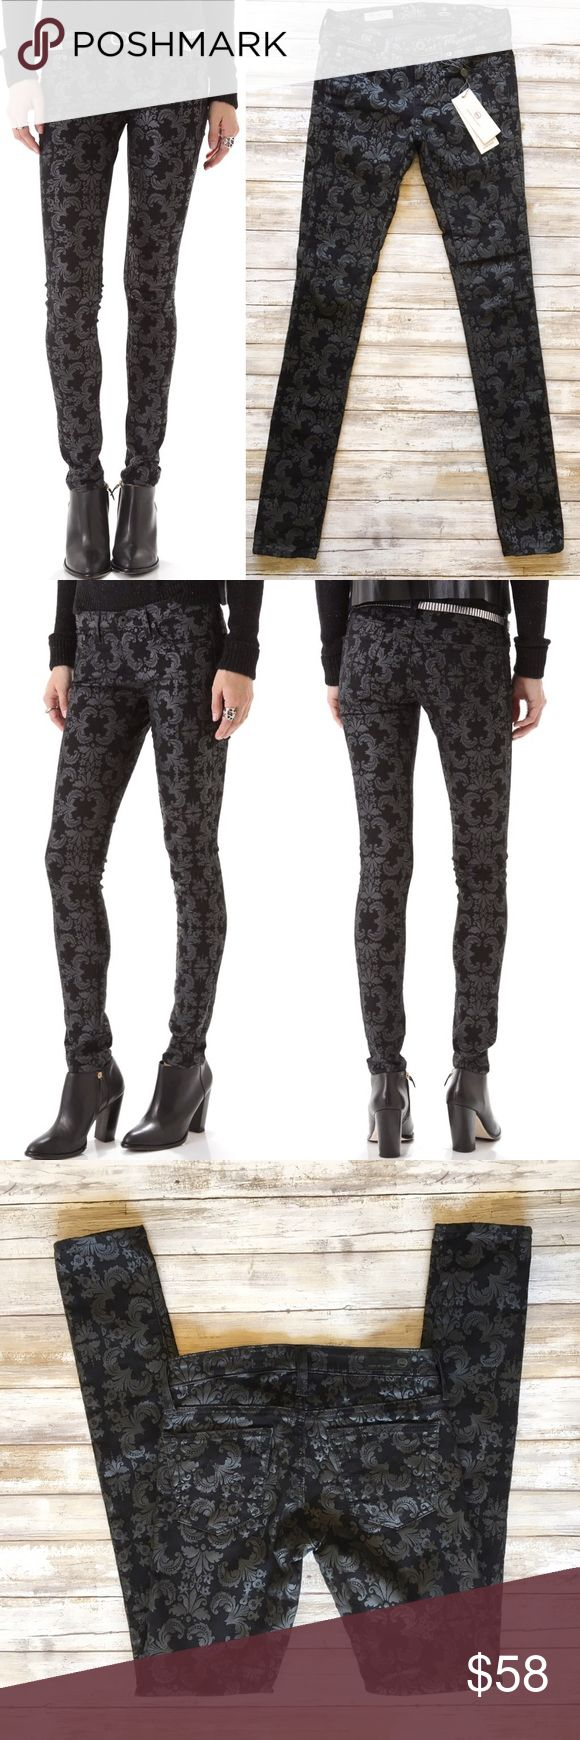 "New ADRIANO GOLDSCHMIED the LEGGING Black F11811 AG the LEGGING SUPER SKINNY Damask Brocade Black Jeans New with tags. Super Skinny AG Adriano Goldschmied Fit is slim from hip to ankle. Made with 9.5 oz Turkish Amaze Hyper Stretch Denim. This exclusive denim is created with excellent recovery so your leggings maintain the same shape and structure while providing a sultry   66% Cotton / 31% Polyester /  3% PU Made in USA   MEASUREMENTS Waist:  12"" flat across Rise:  6"" Inseam: 30   Thank you…"